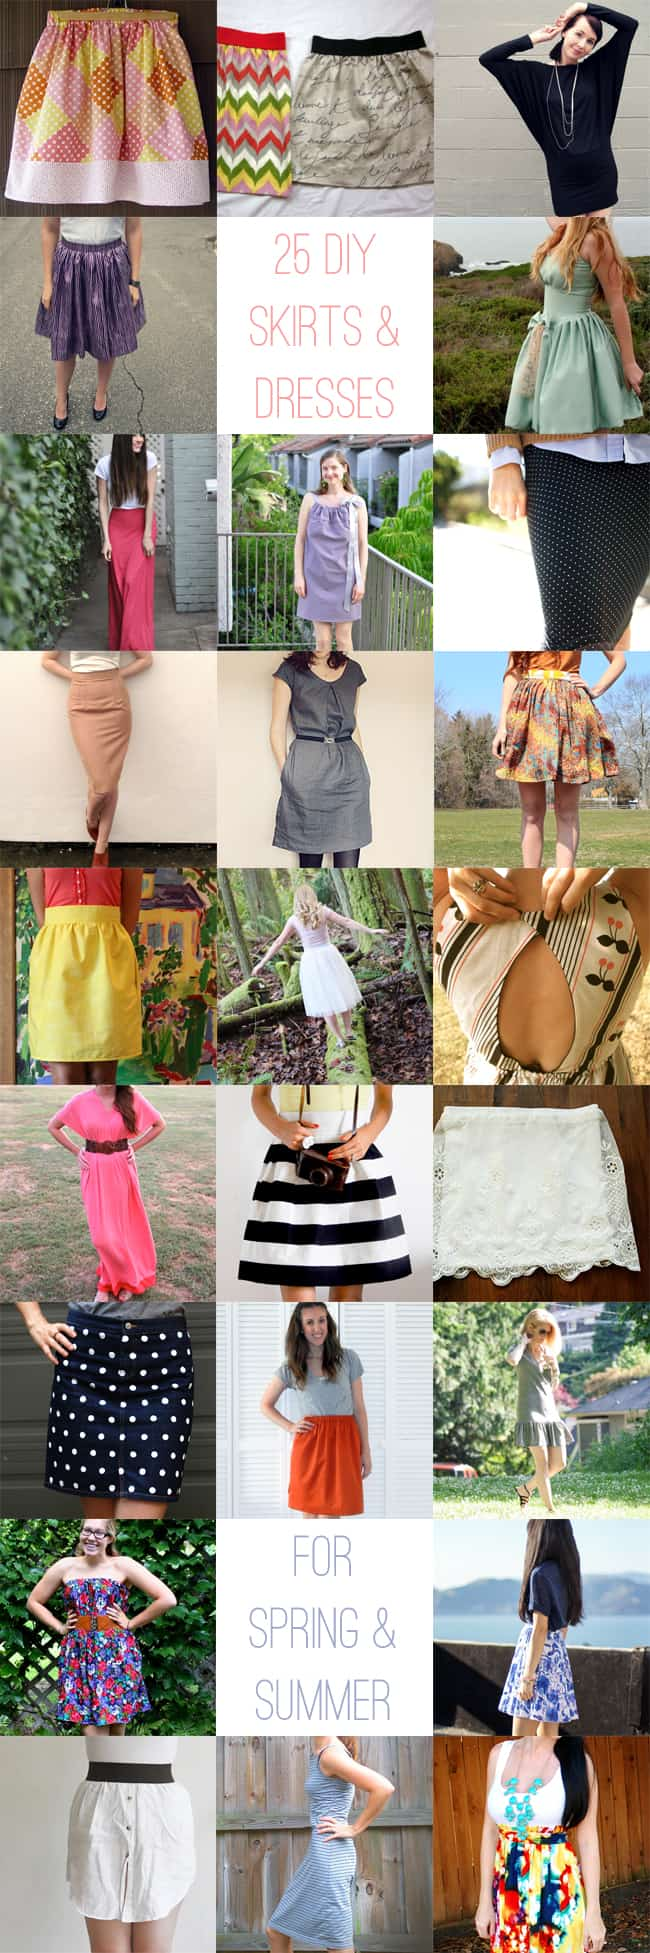 25-diy-dresses-and-skirts-for-spring-and-summer